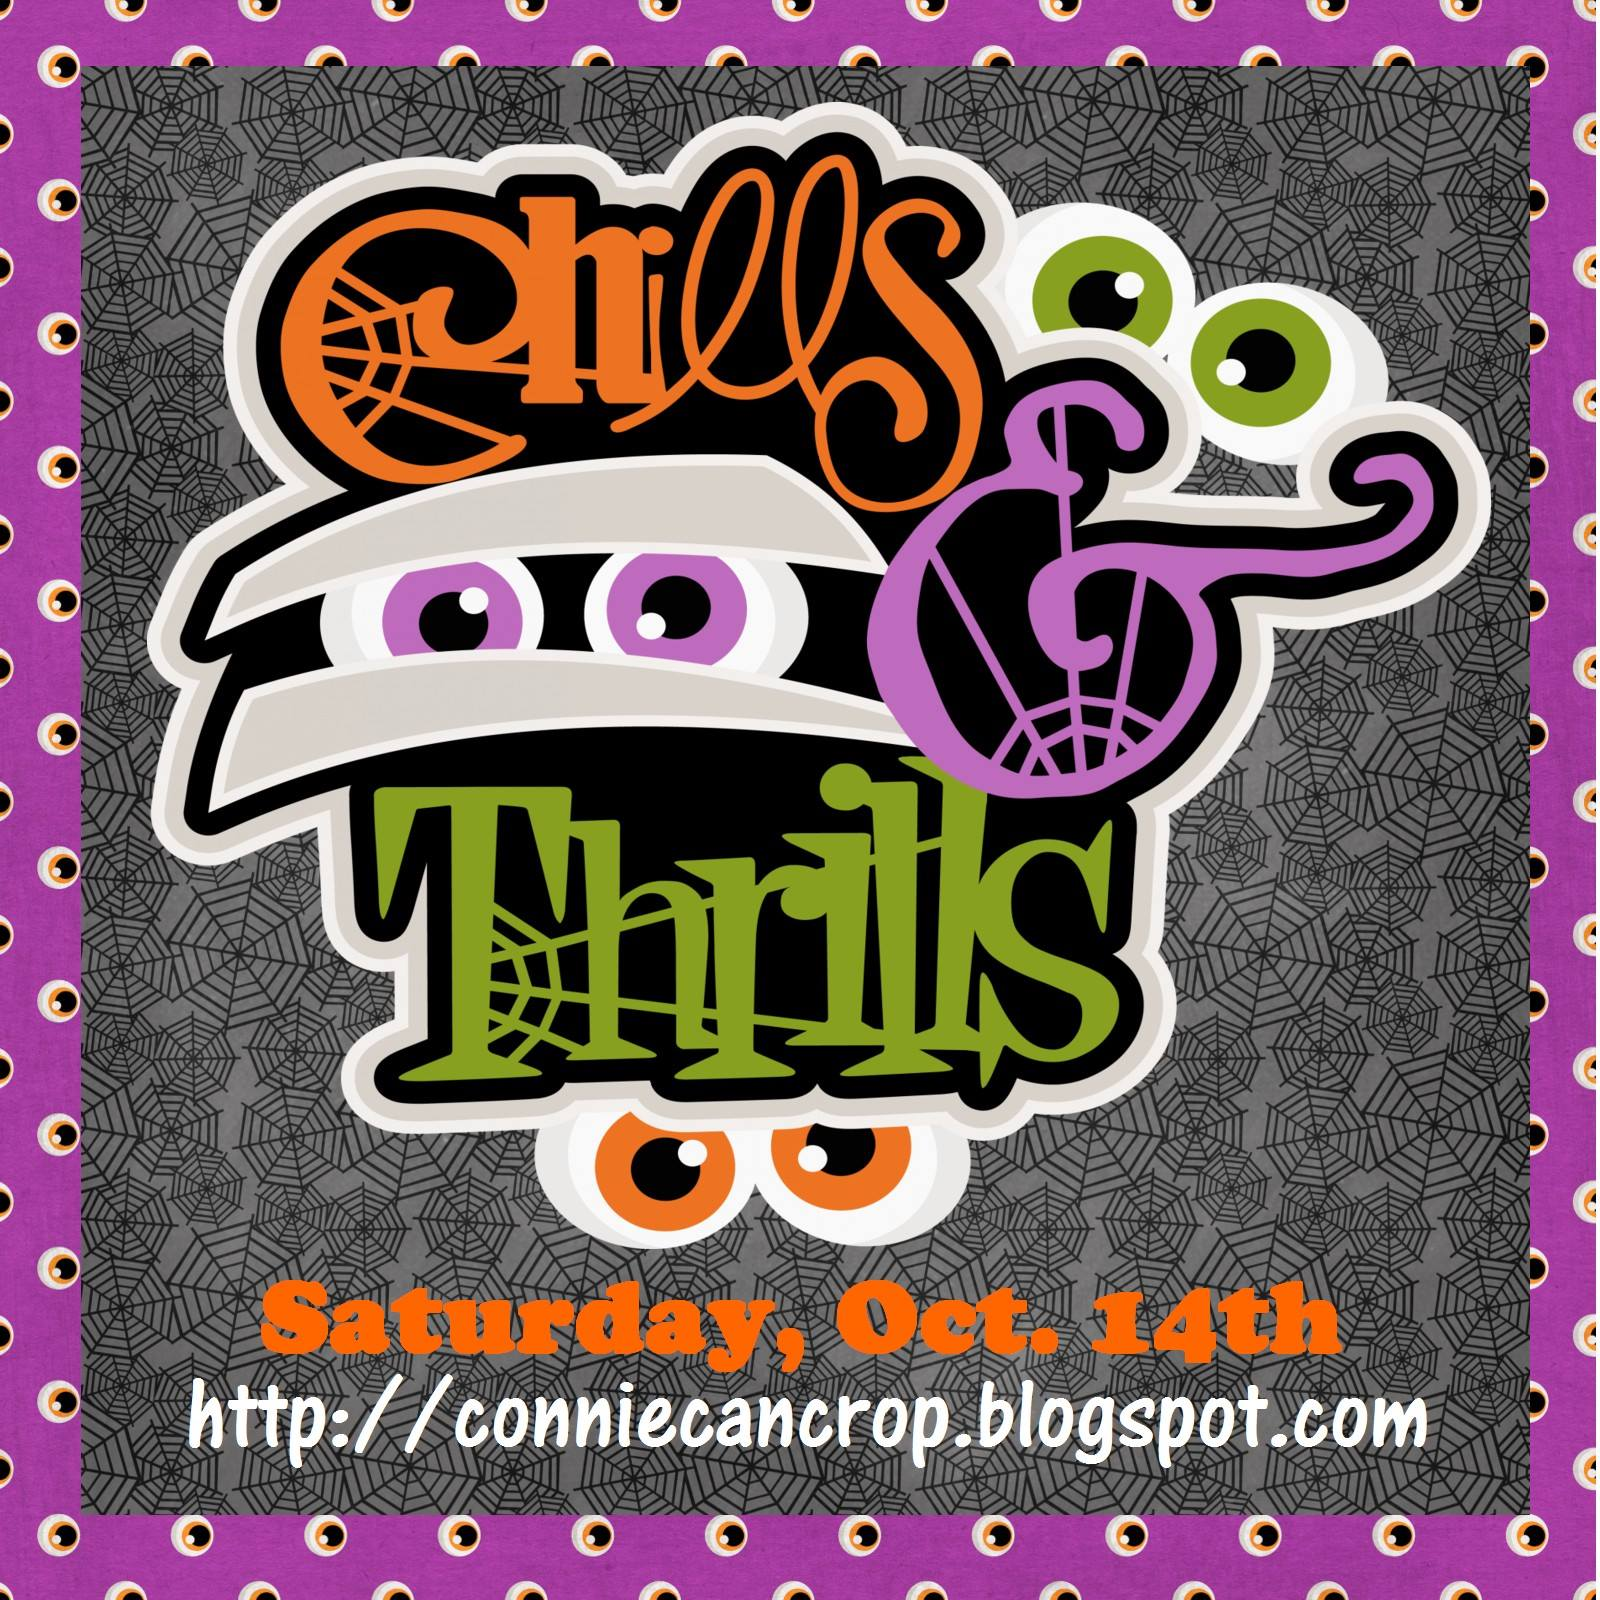 Chills & Thrills Blog Hop